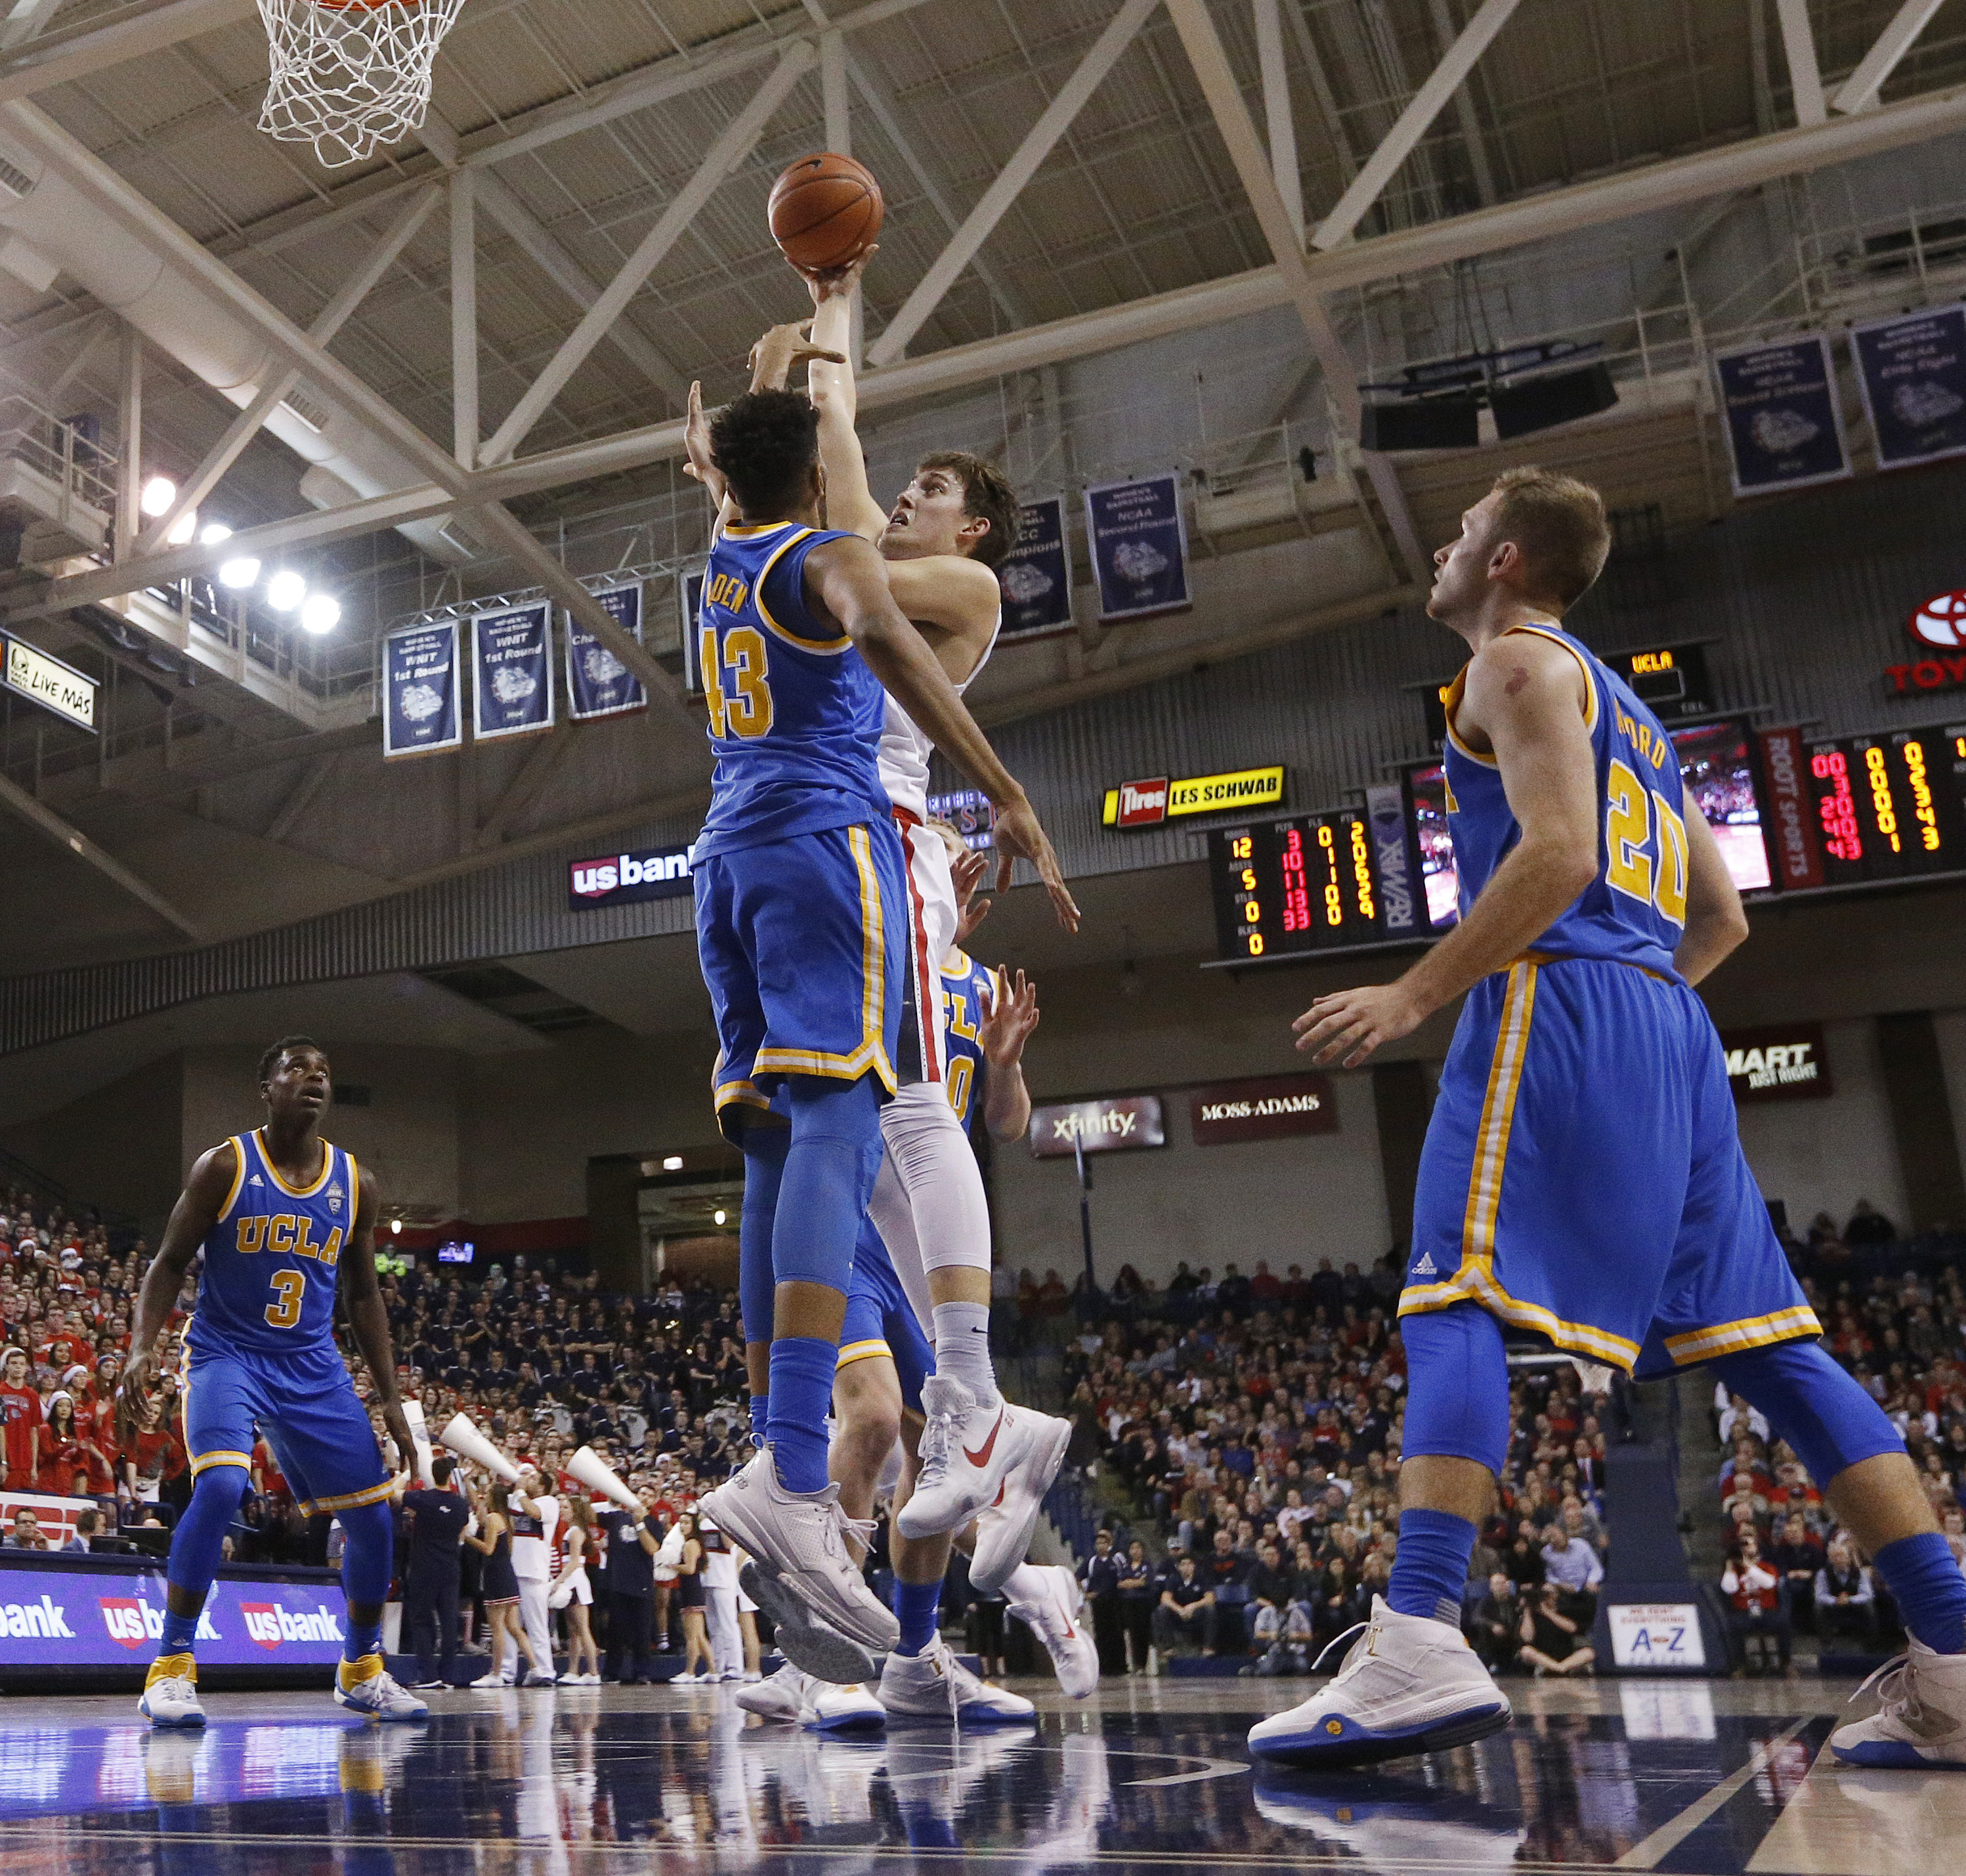 UCLA's Jonah Bolden (43) defends Gonzaga's Kyle Wiltjer during the first half of an NCAA college basketball game, Saturday, Dec. 12, 2015, in Spokane, Wash. (AP Photo/Young Kwak)